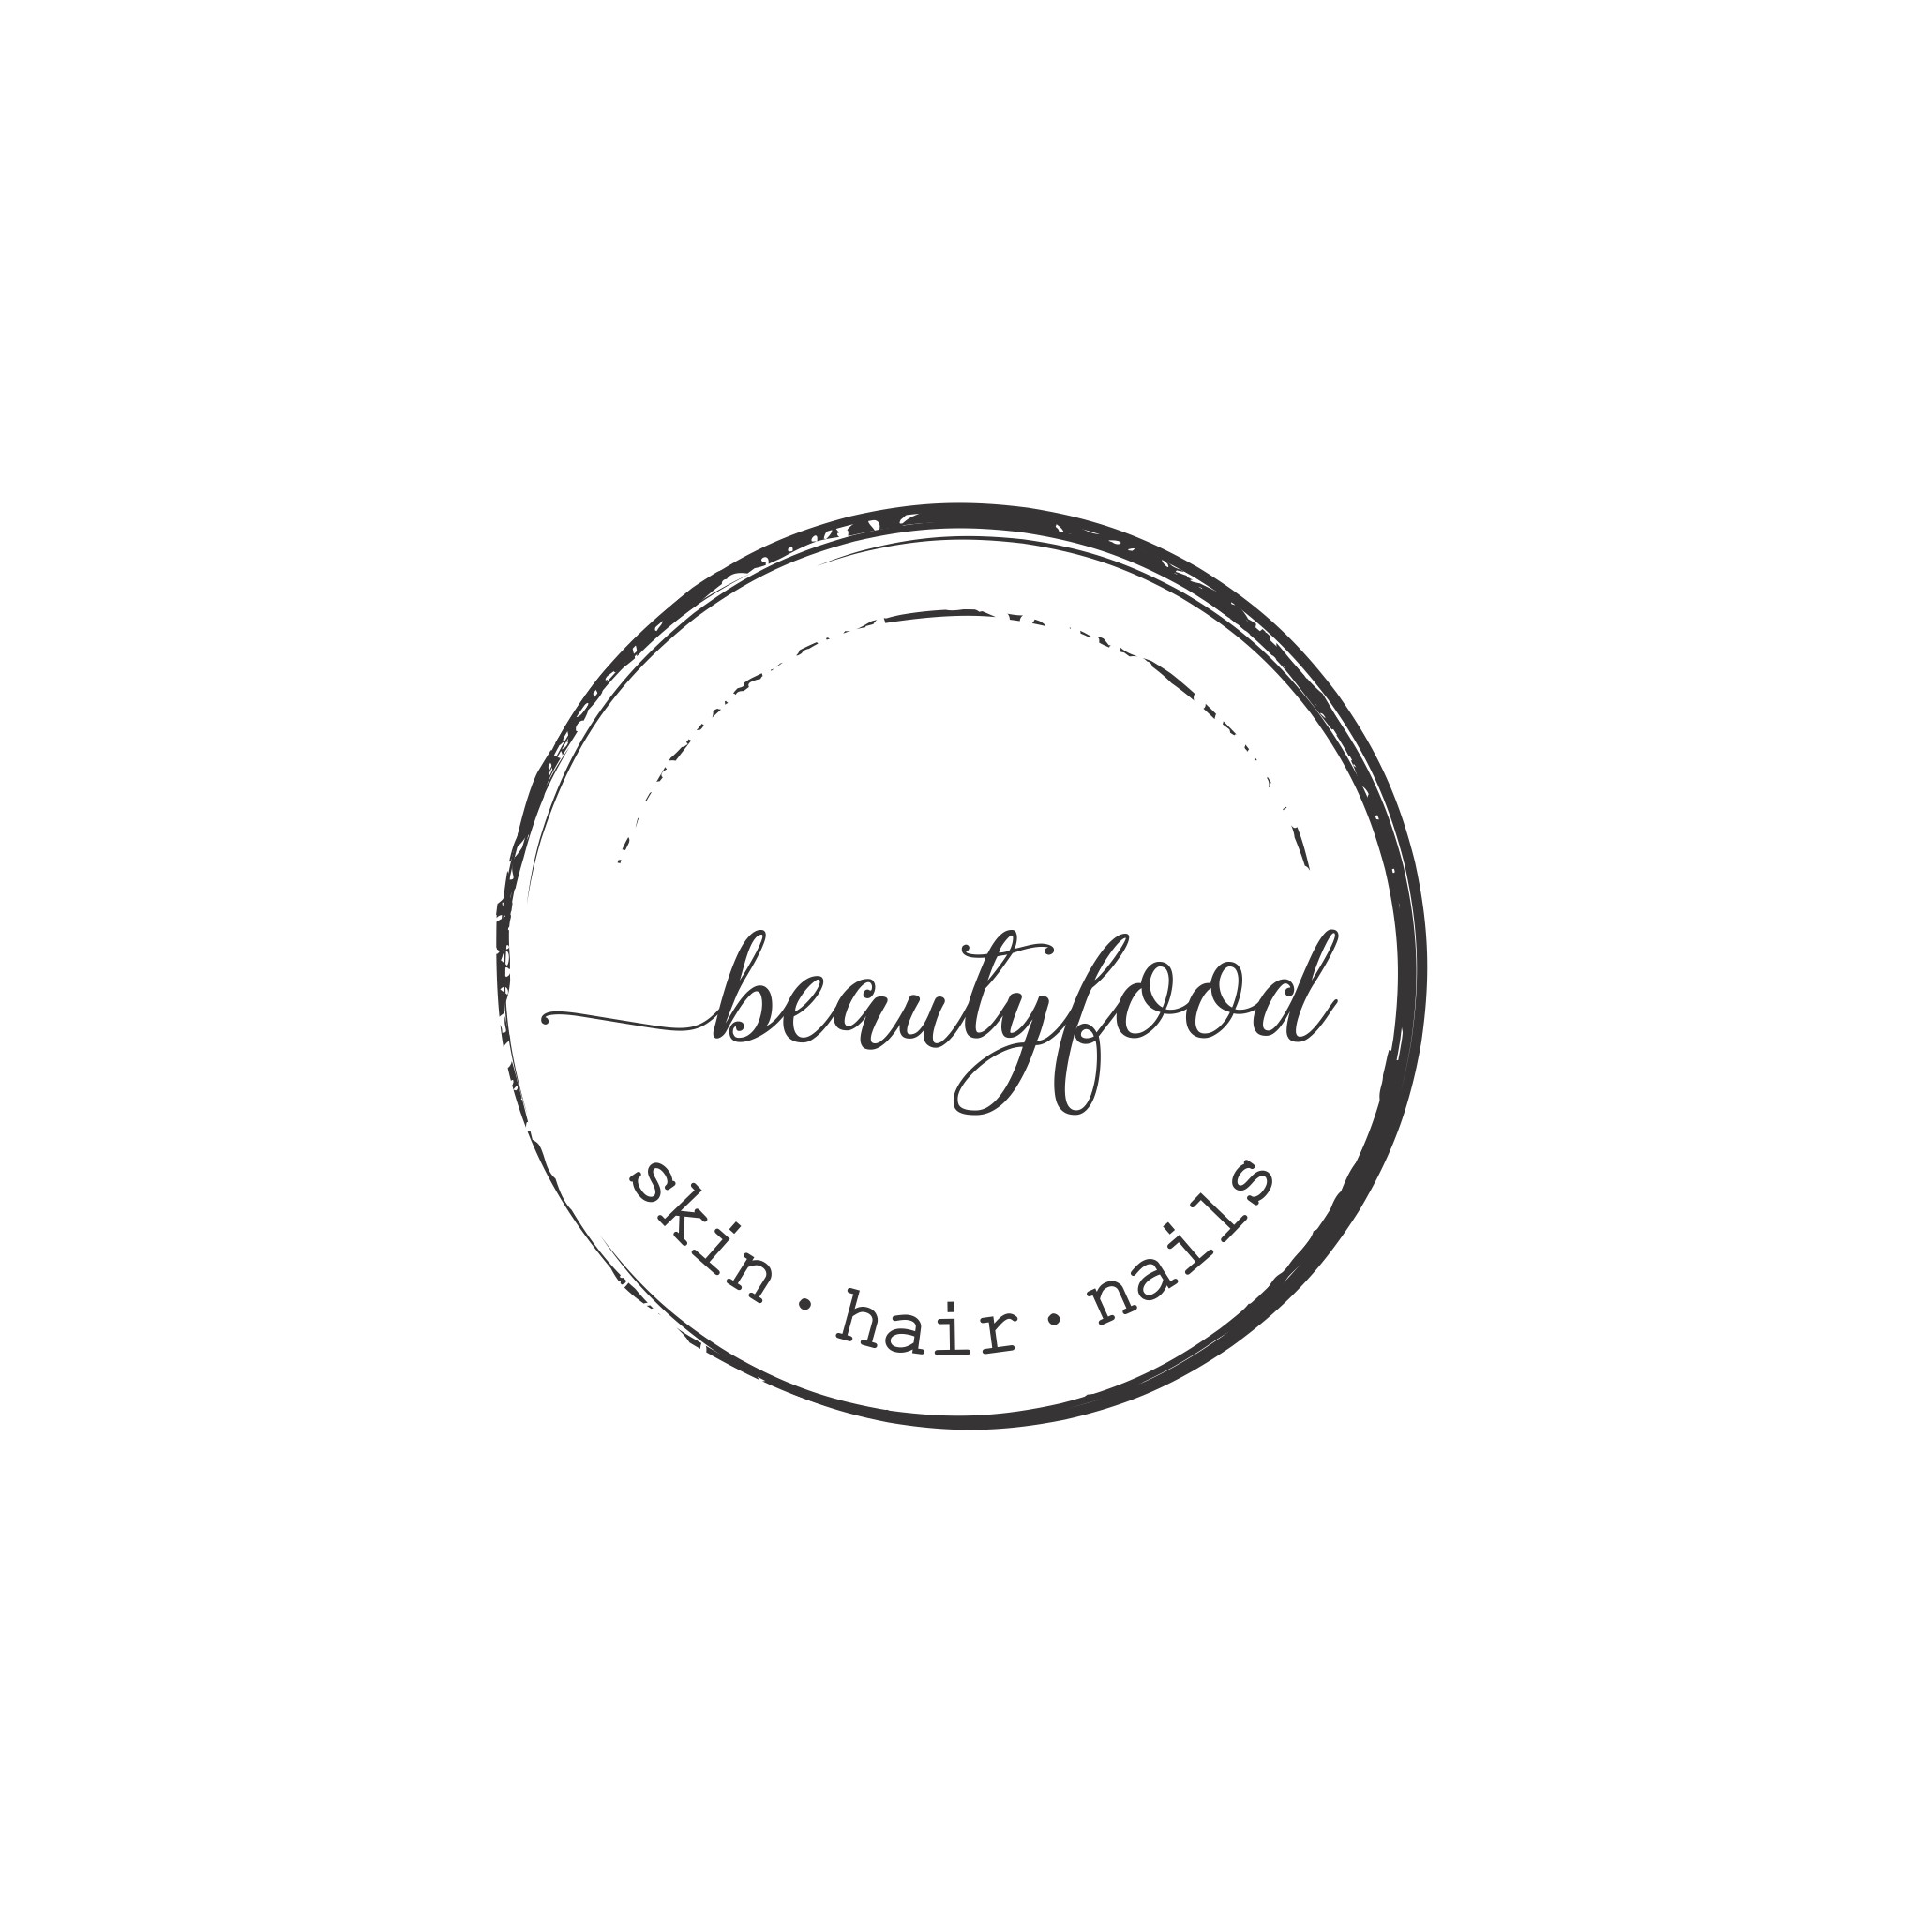 Original stamp logo wanted for a cosmetics brand inspired by food